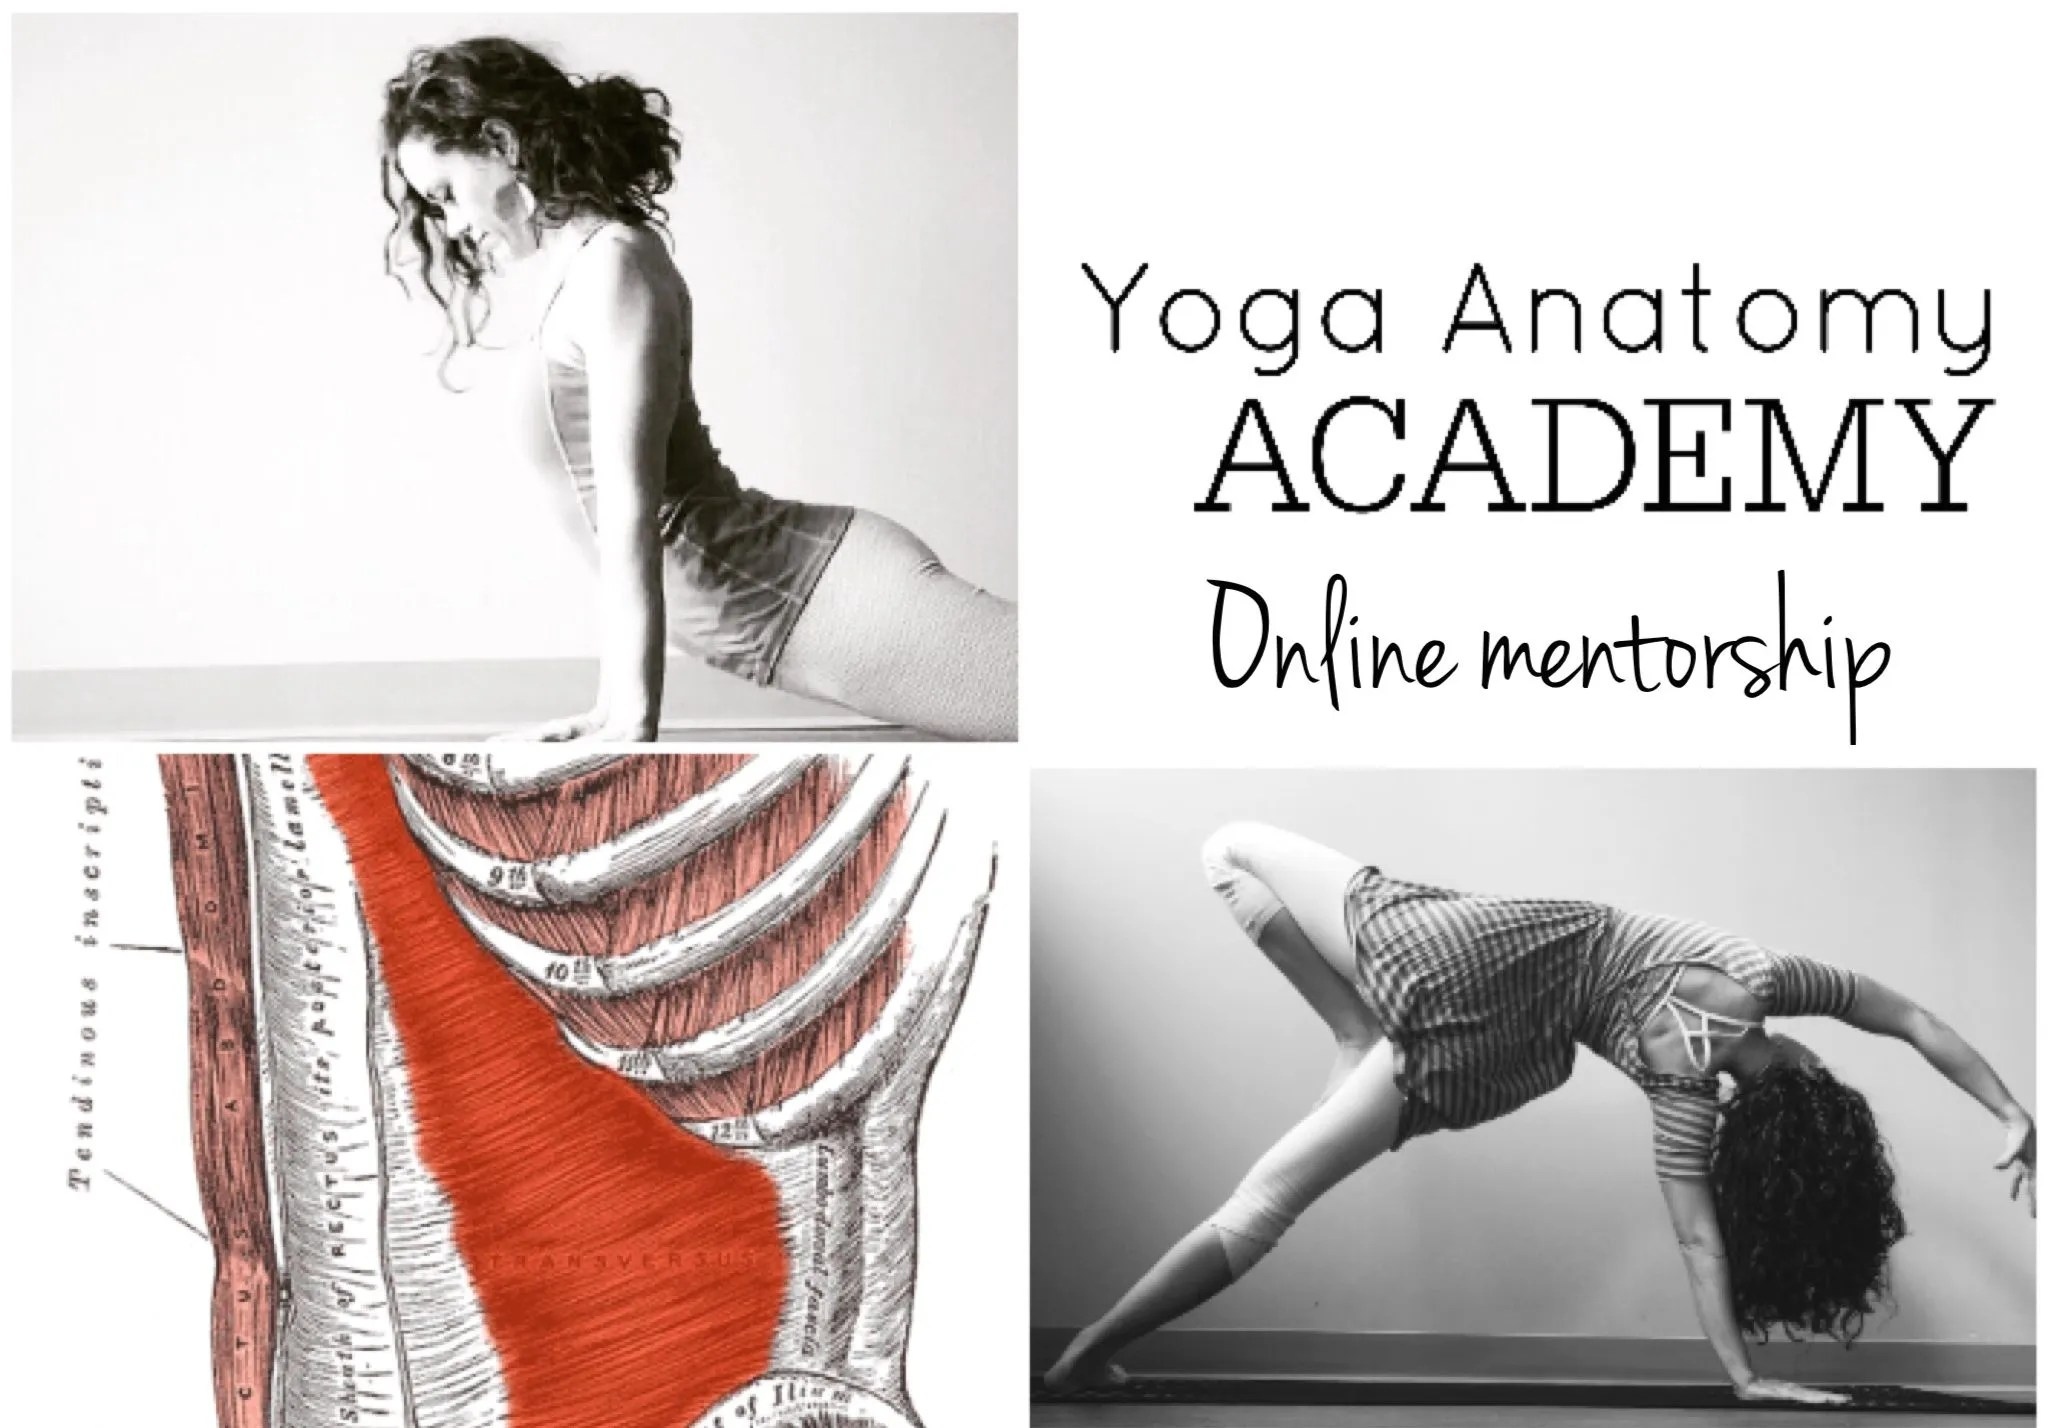 About - YOGA ANATOMY ACADEMY